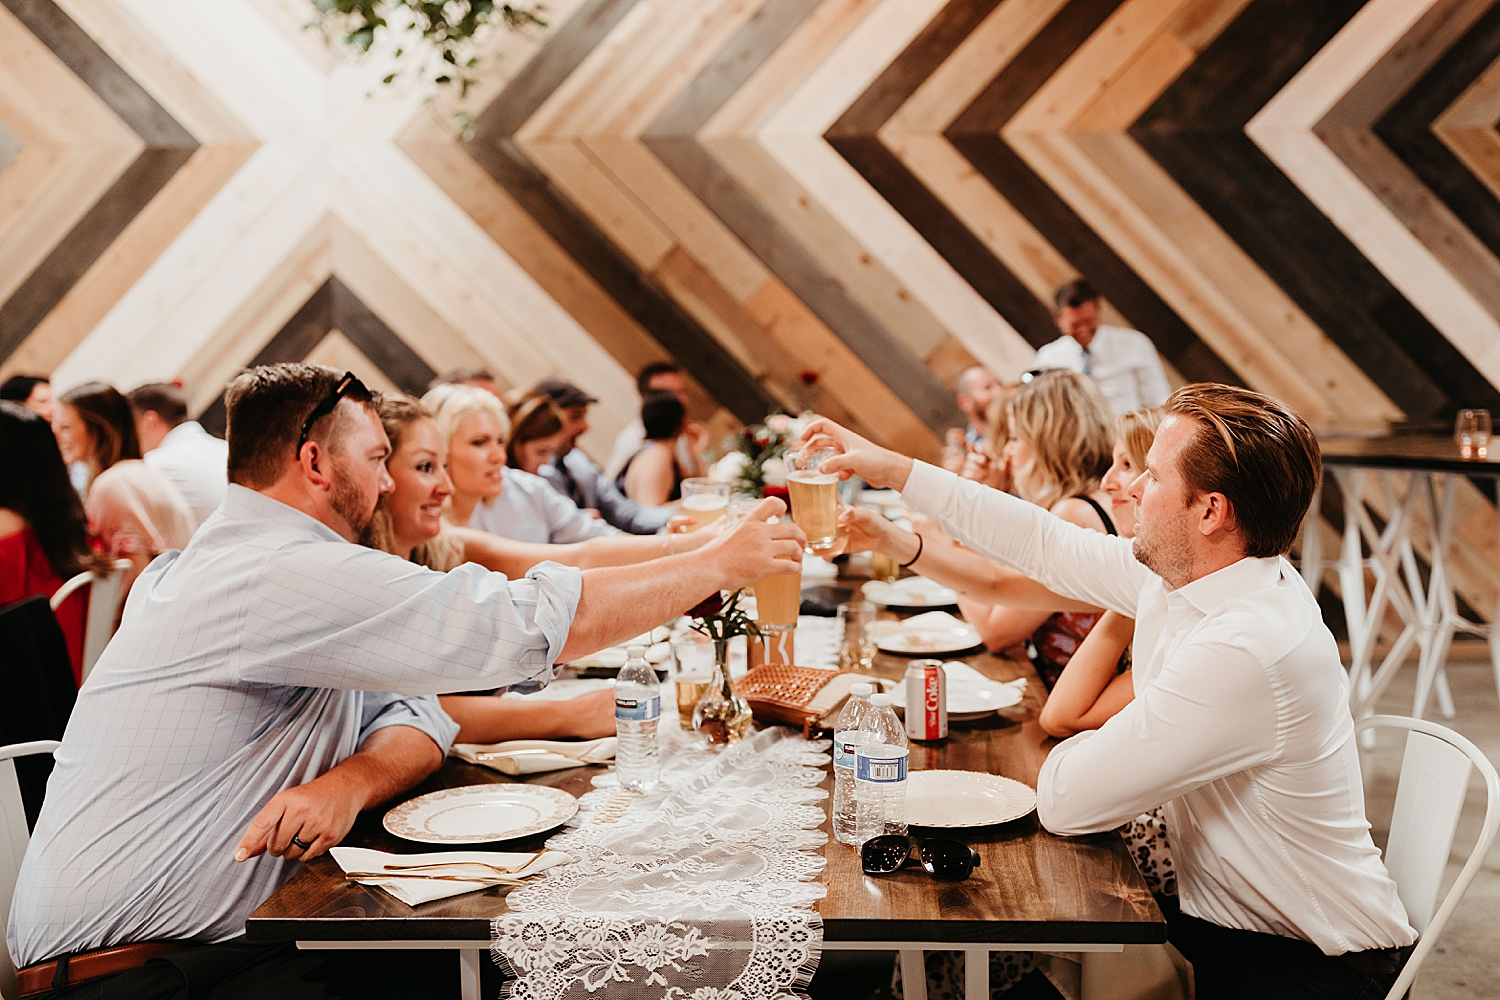 The-Wood-Shed-Booze-Brothers-Wedding-85.jpg